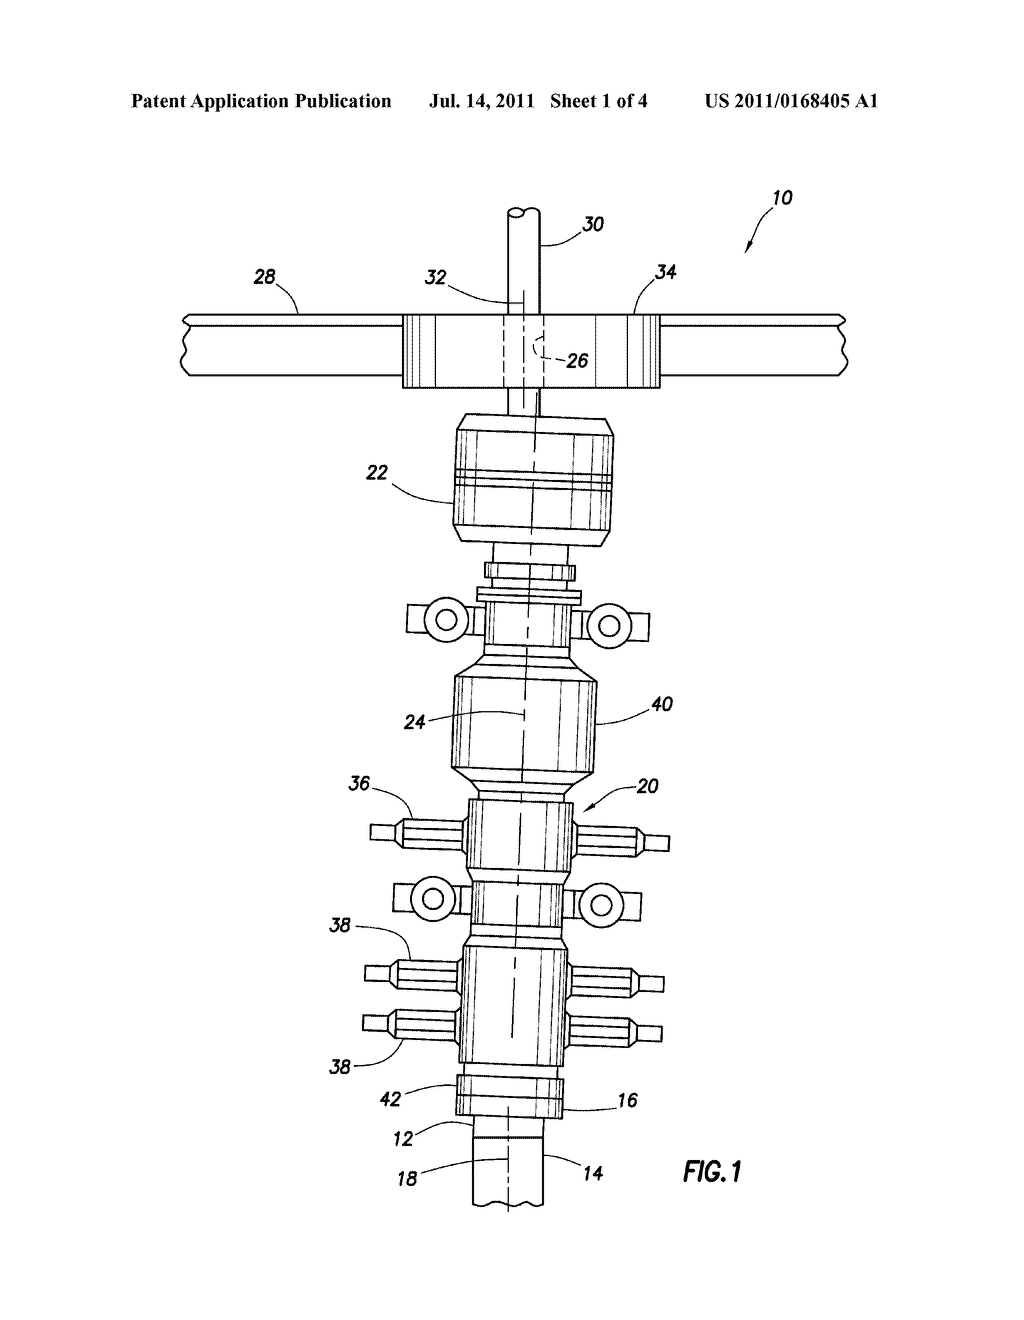 ALIGNMENT OF BOP STACK TO FACILITATE USE OF A ROTATING CONTROL